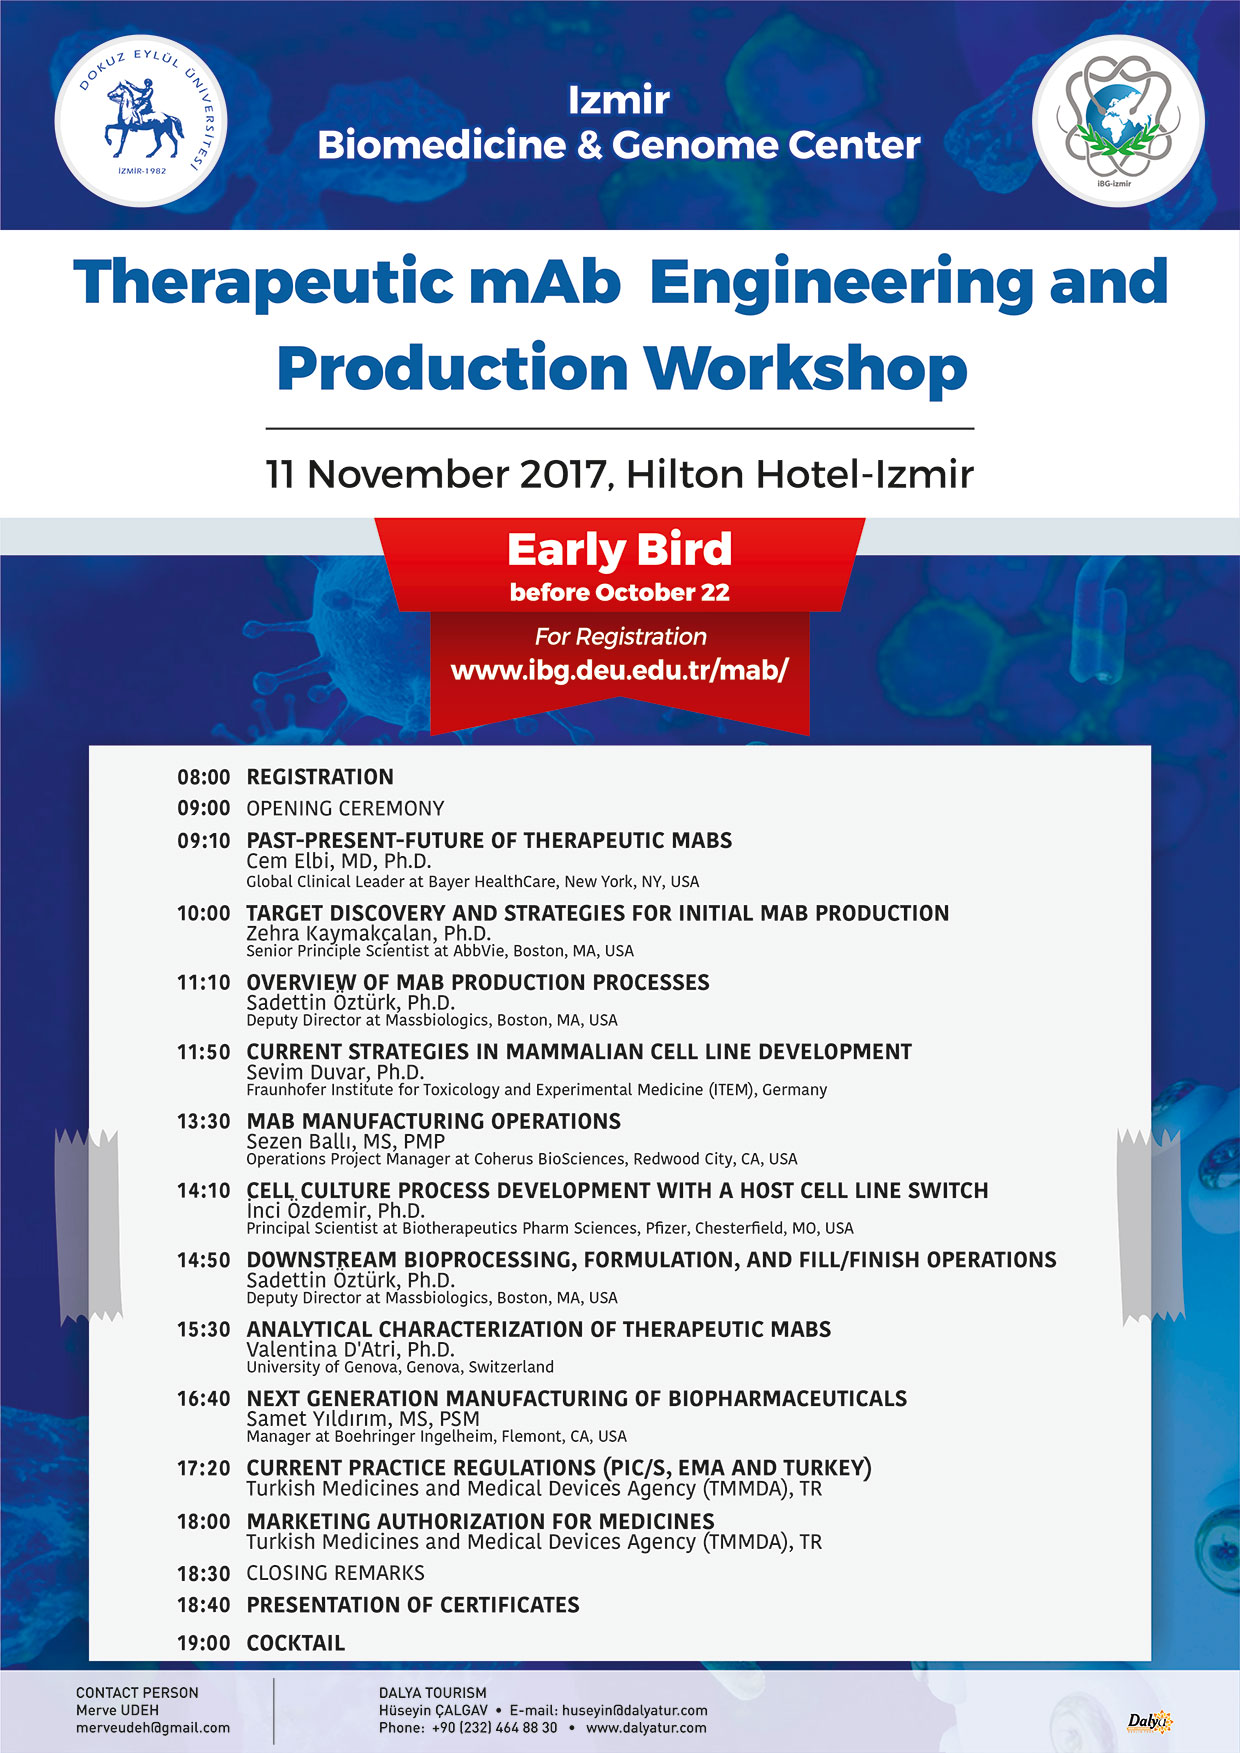 Therapeutic mAb Engineering and Production Workshop